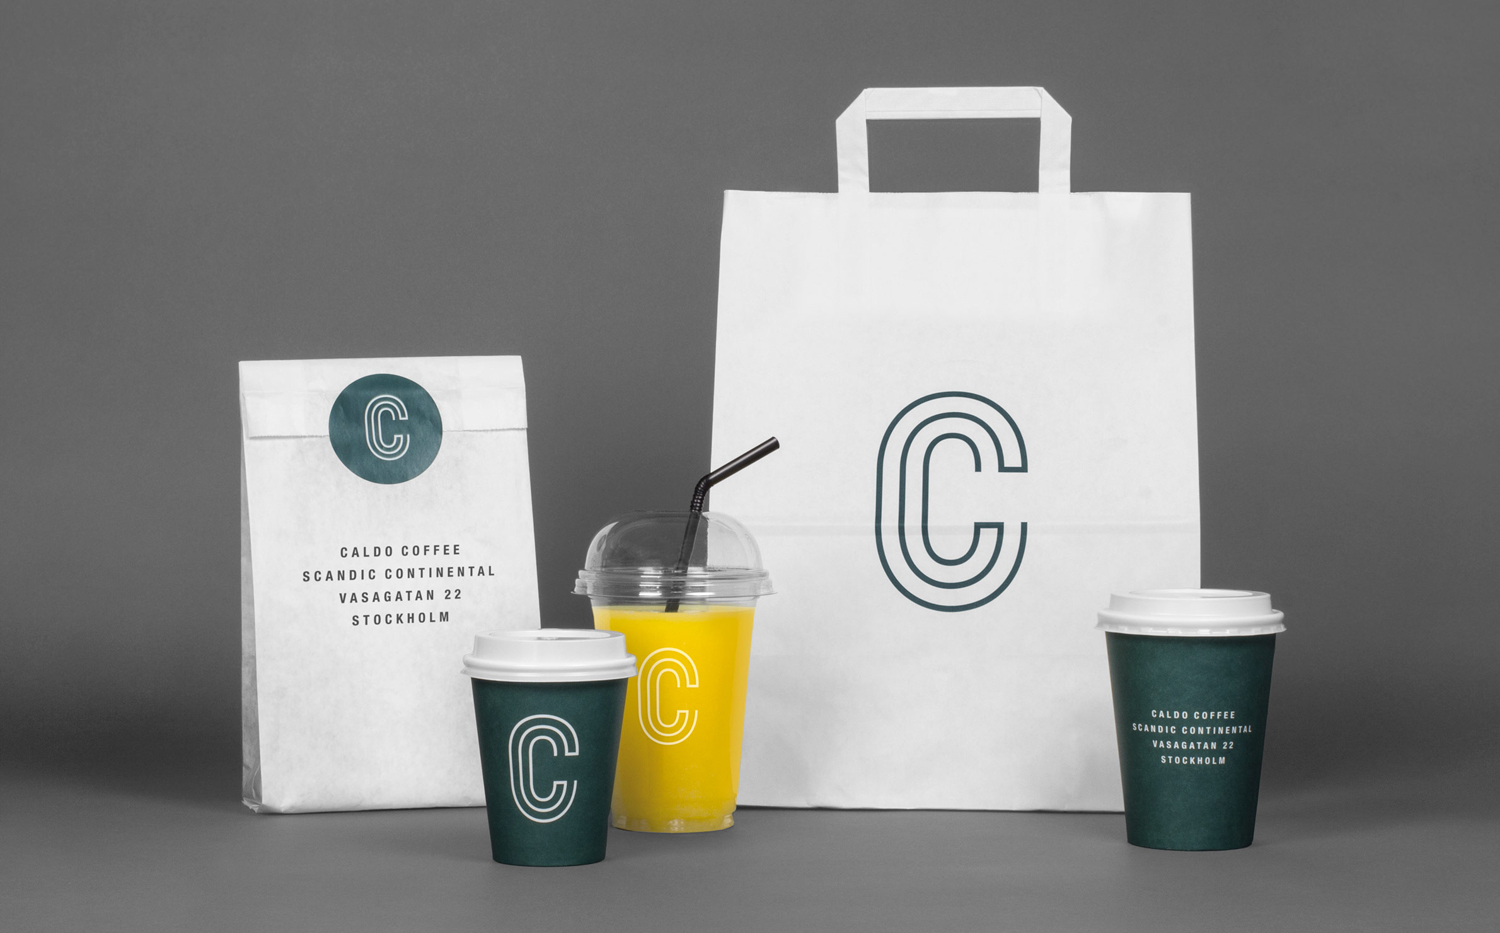 Logo and packaging designed by 25ah for Stockholm cafe Caldo Coffee at the Scandic Continental